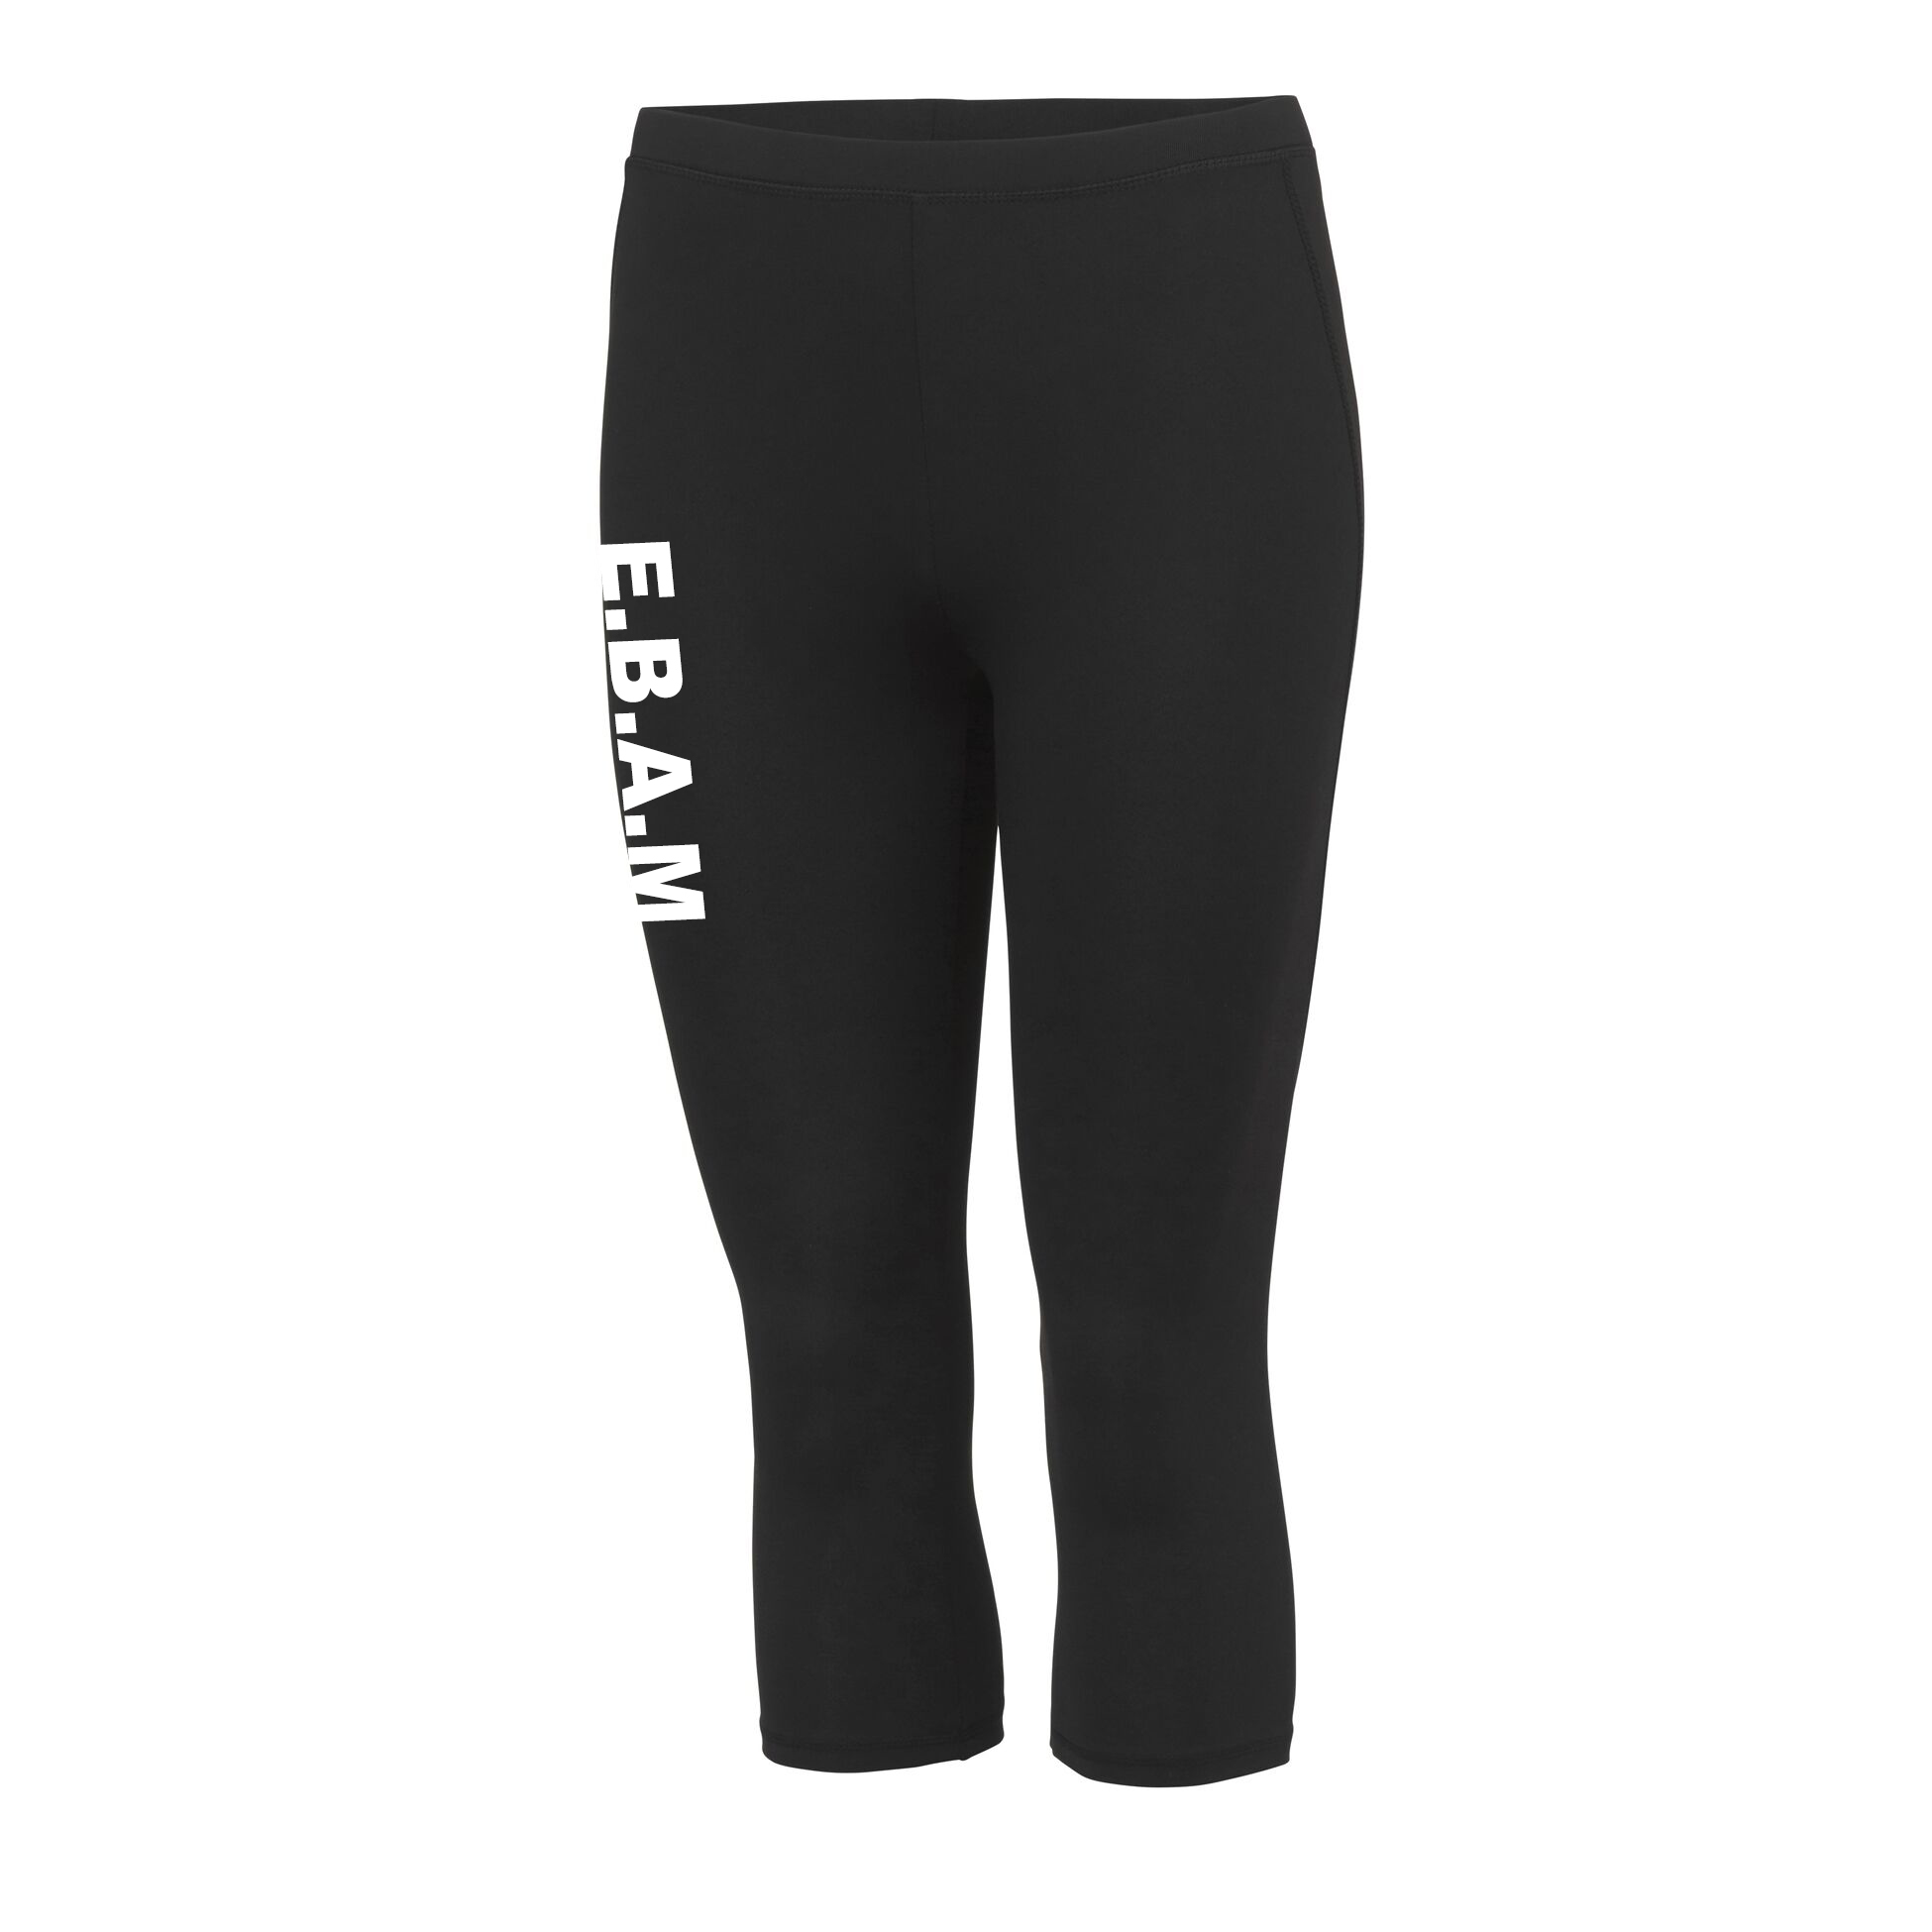 EBAM 3/4 Leg leggings